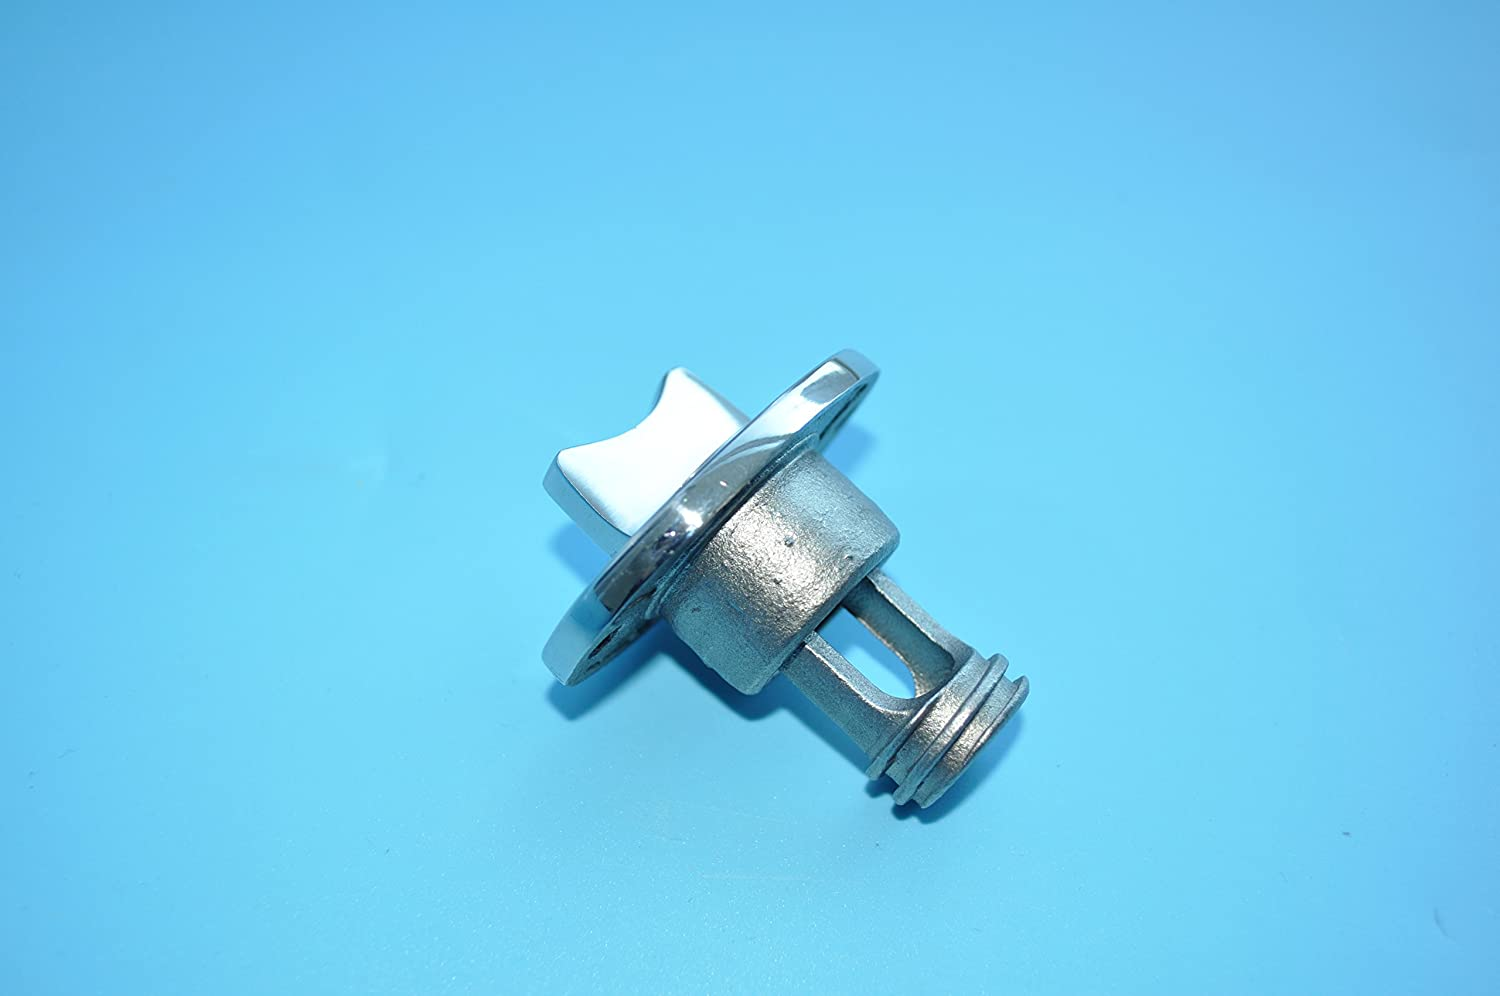 Oval Garboard Drain Plug Stainless Steel Boat Fits 1/'/' Hole.Thread for 3//4/'/'